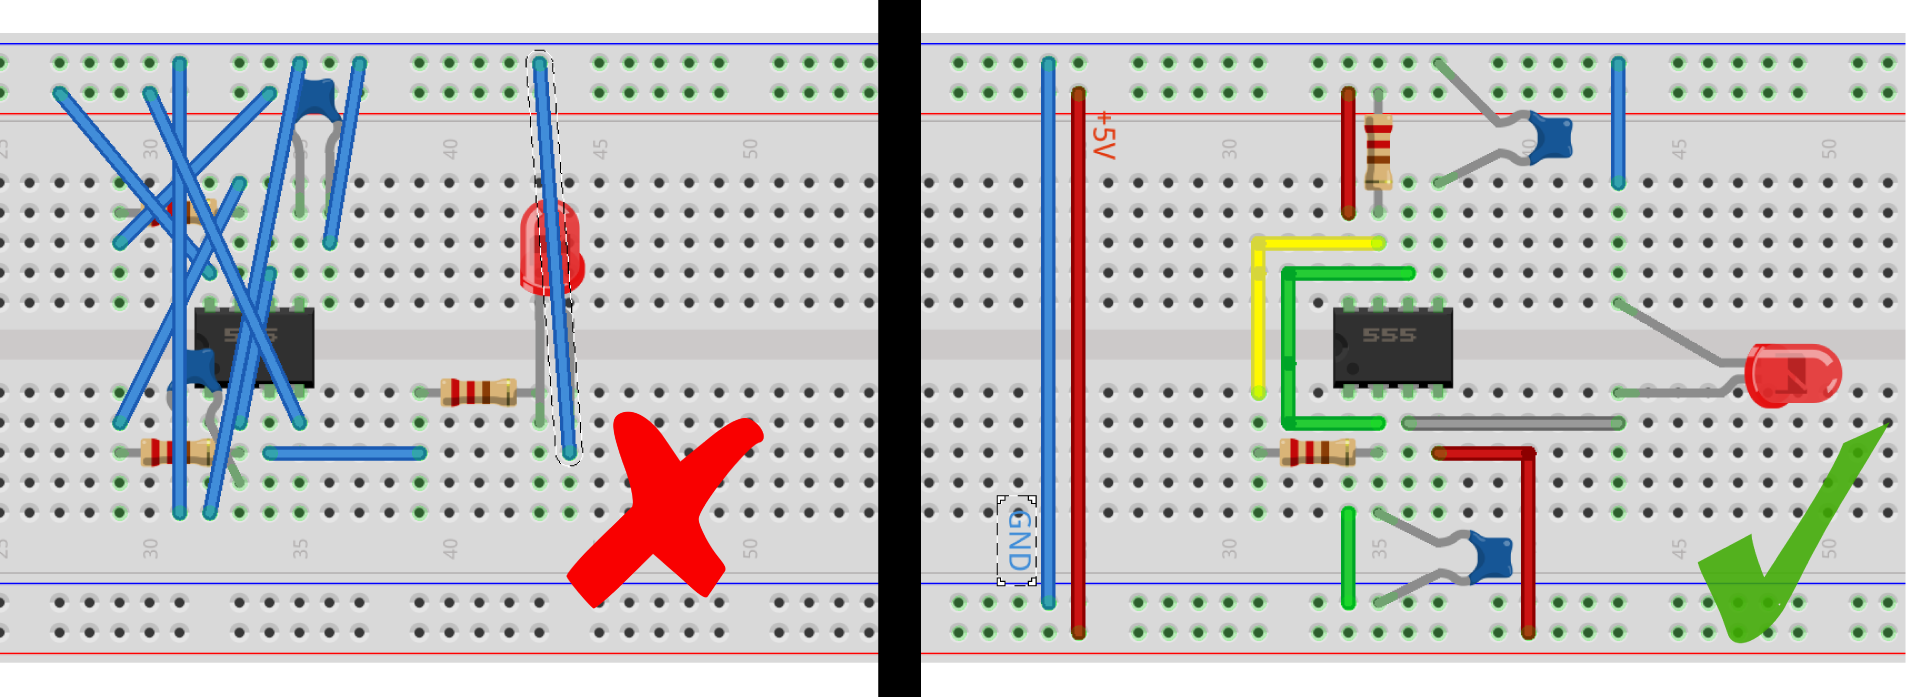 6 Simple Mistakes Electronics Beginners Make Bald Engineer This Simplest Continuity Tester Circuit Electronic Messy Fritzing Diagrams Is An Open Source Software Project Aimed At Making Design Circuits